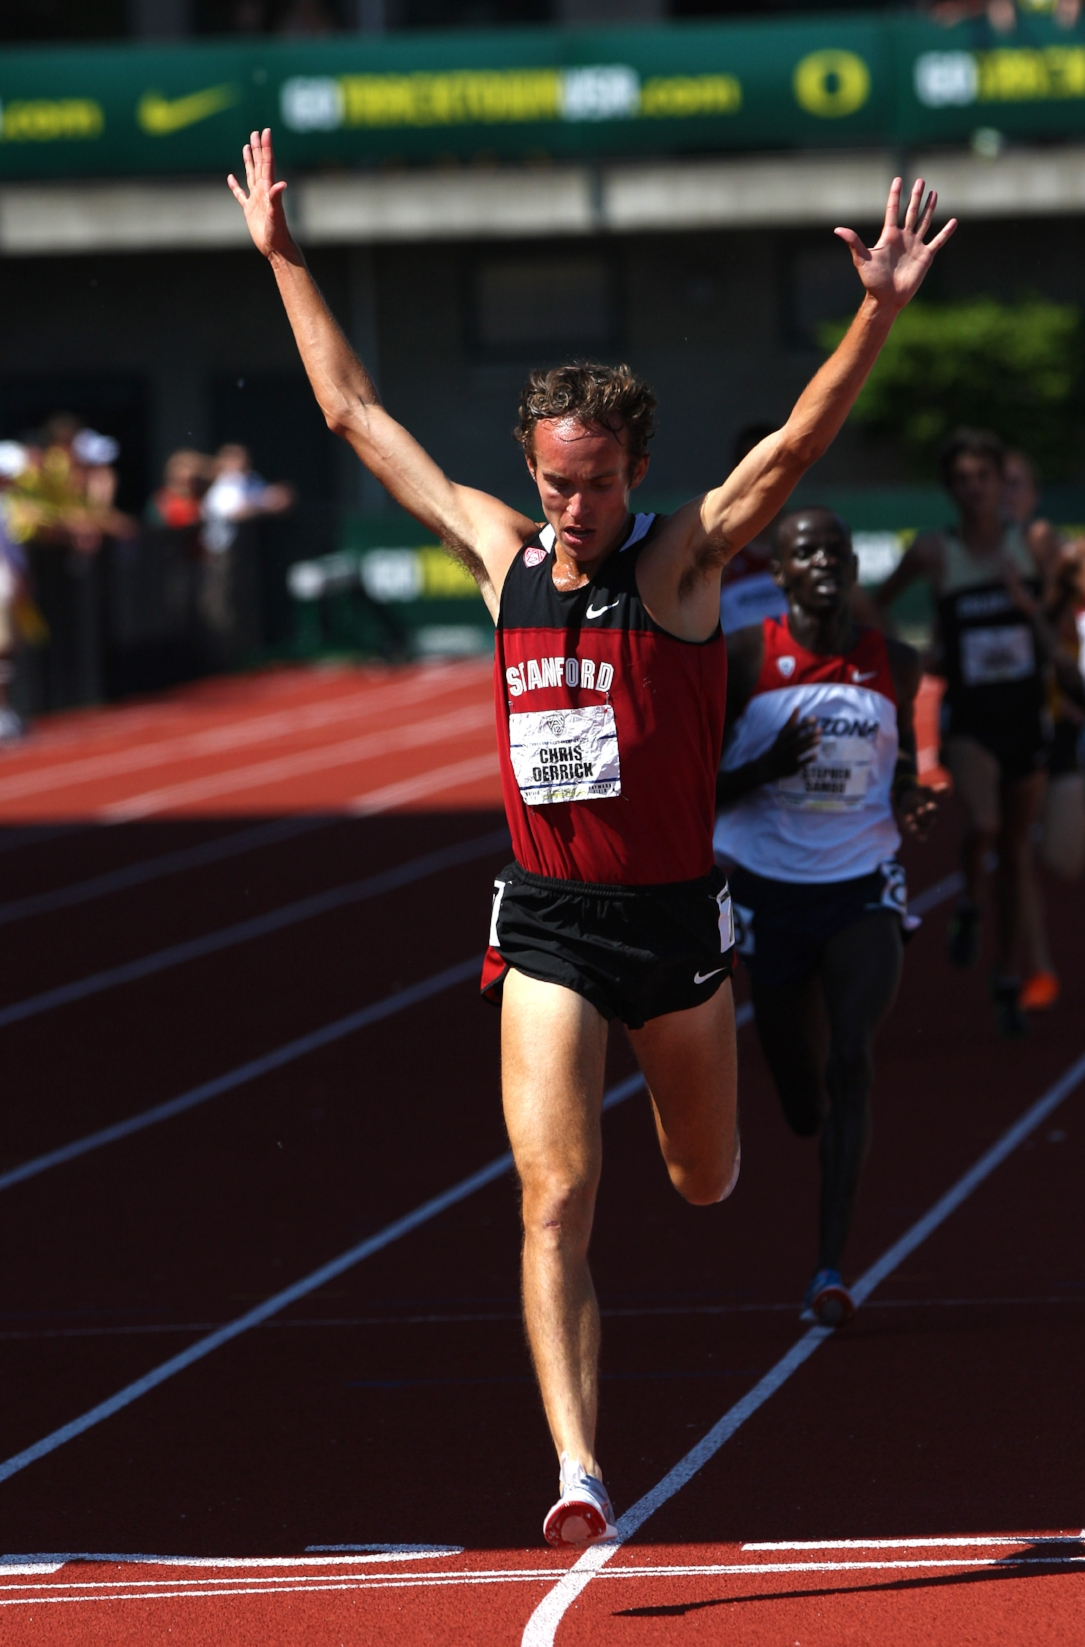 Chris Derrick, one of Jason's standouts at Stanford, taking first place at the 2012 Pac-12 5,000m Championship.